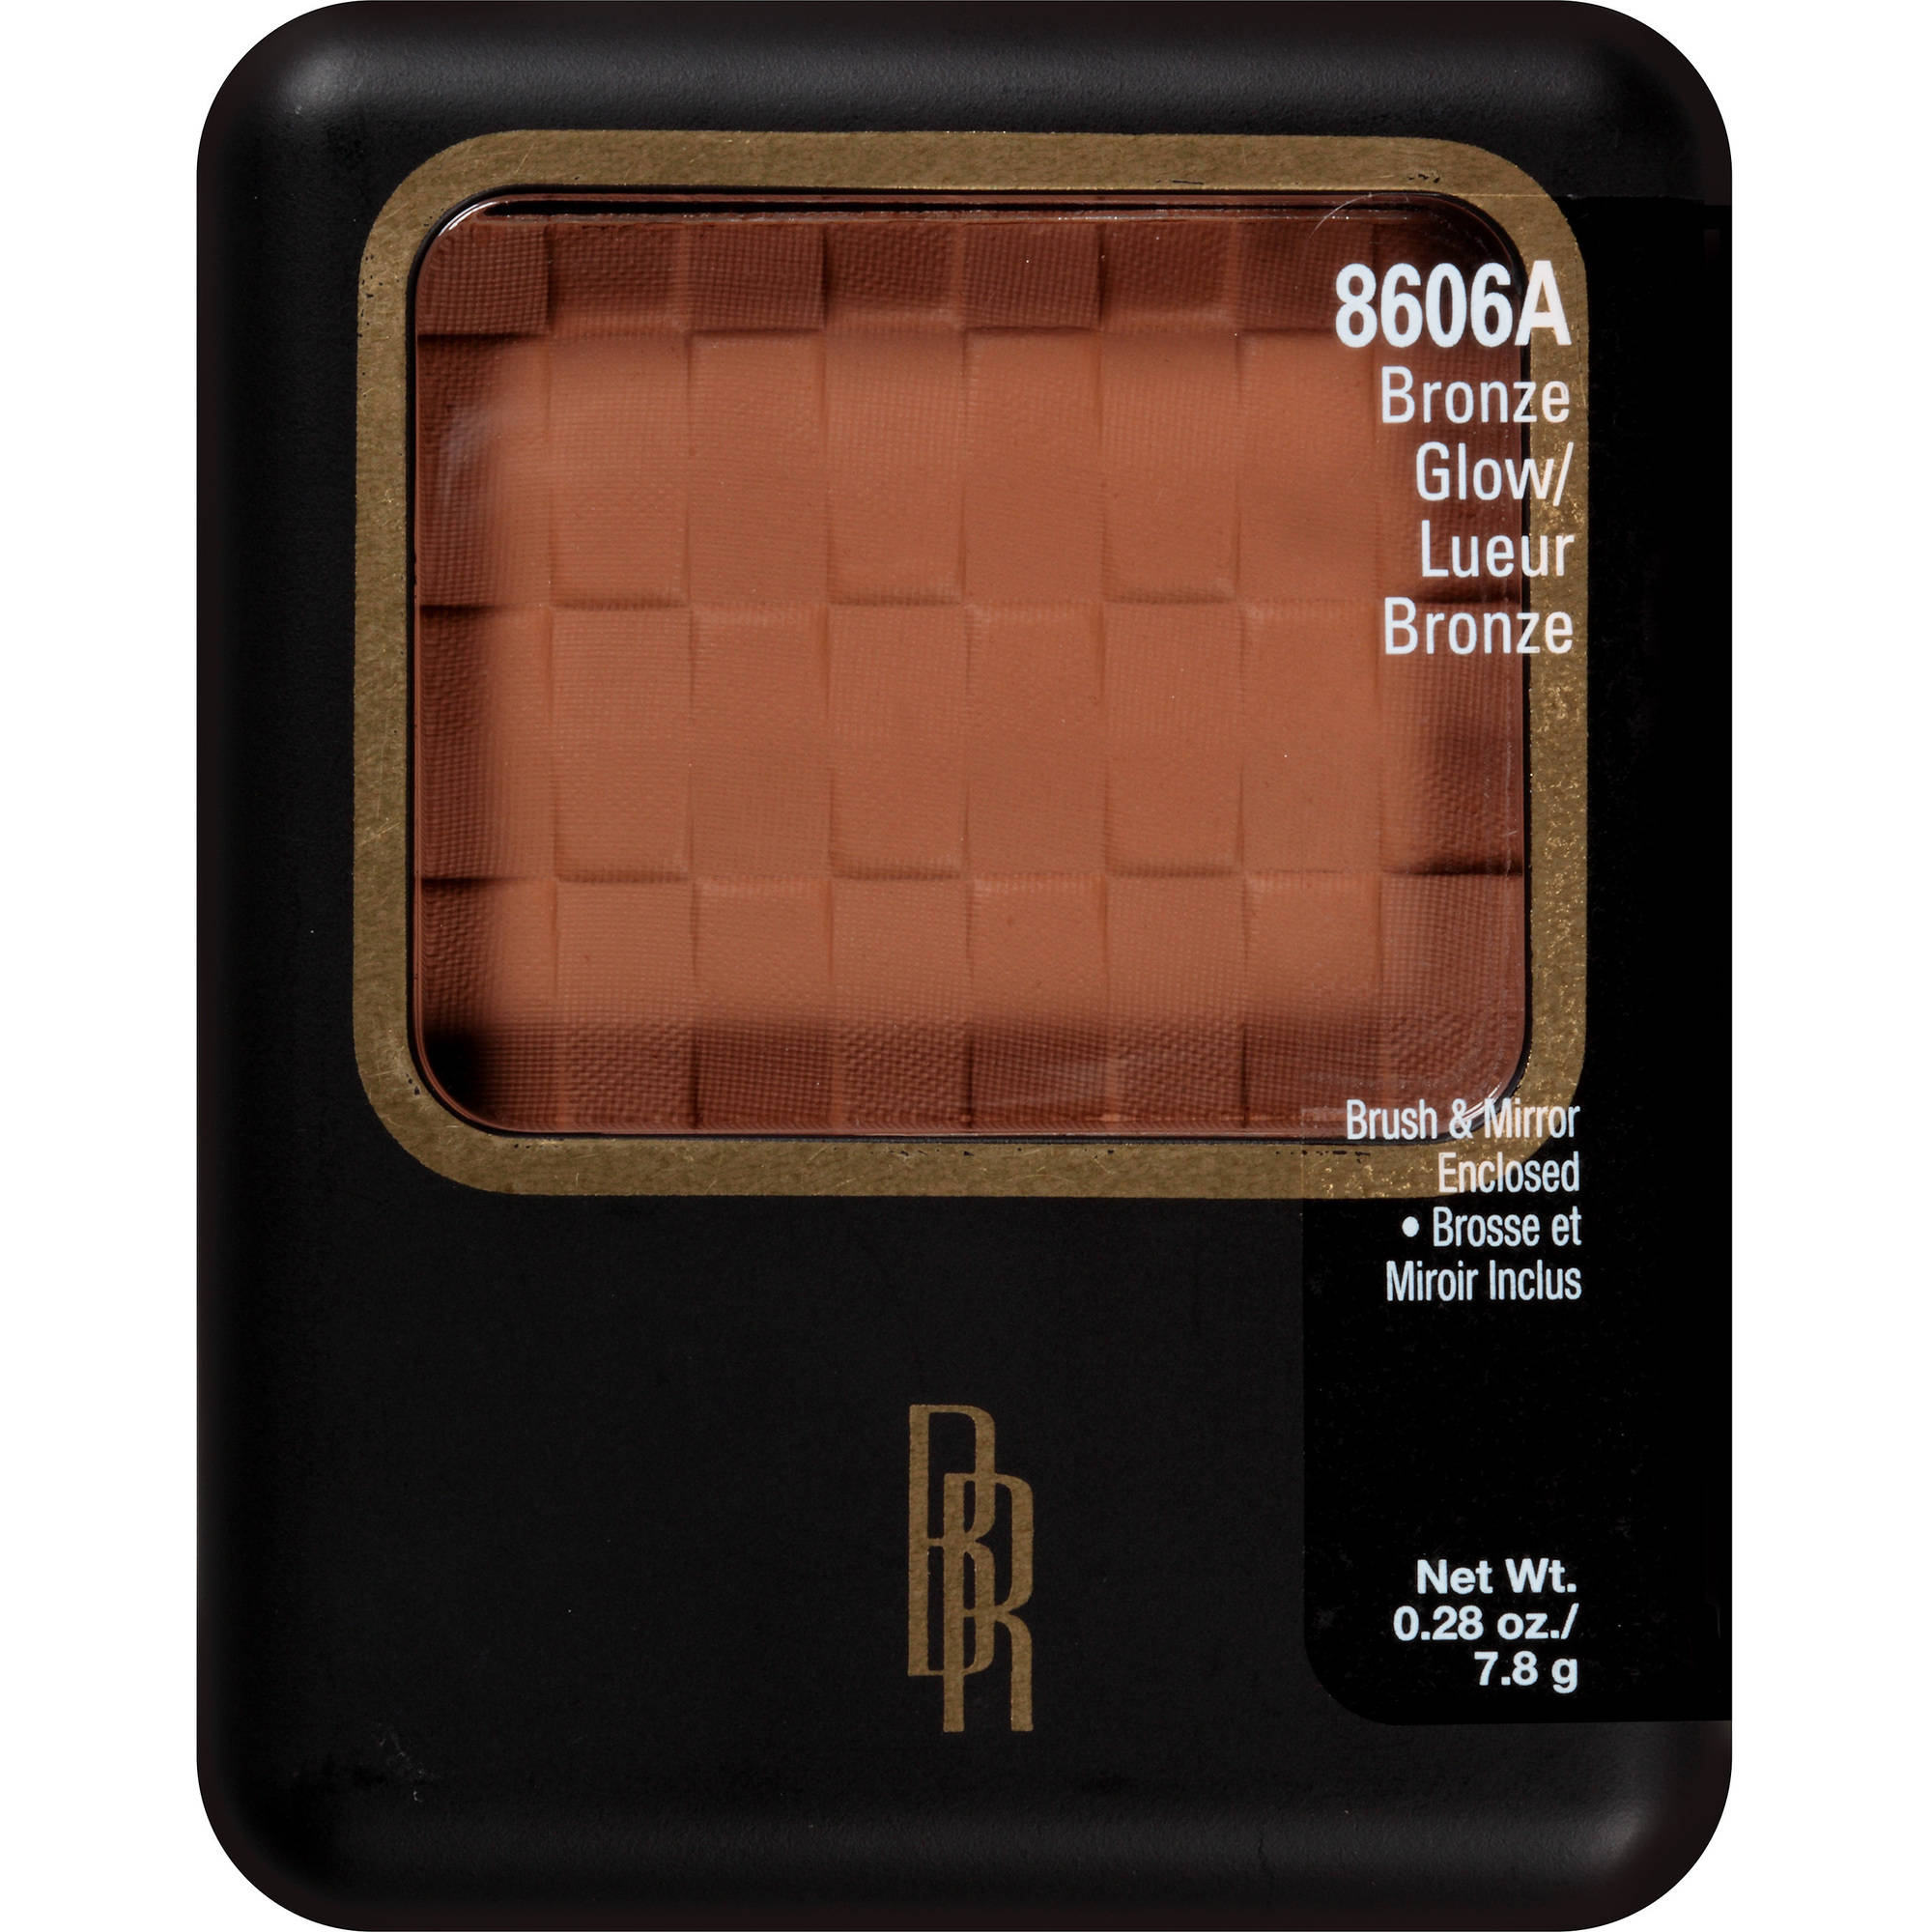 Black Radiance Pressed Facial Powder, 8606A Bronze Glow, 0.28 oz